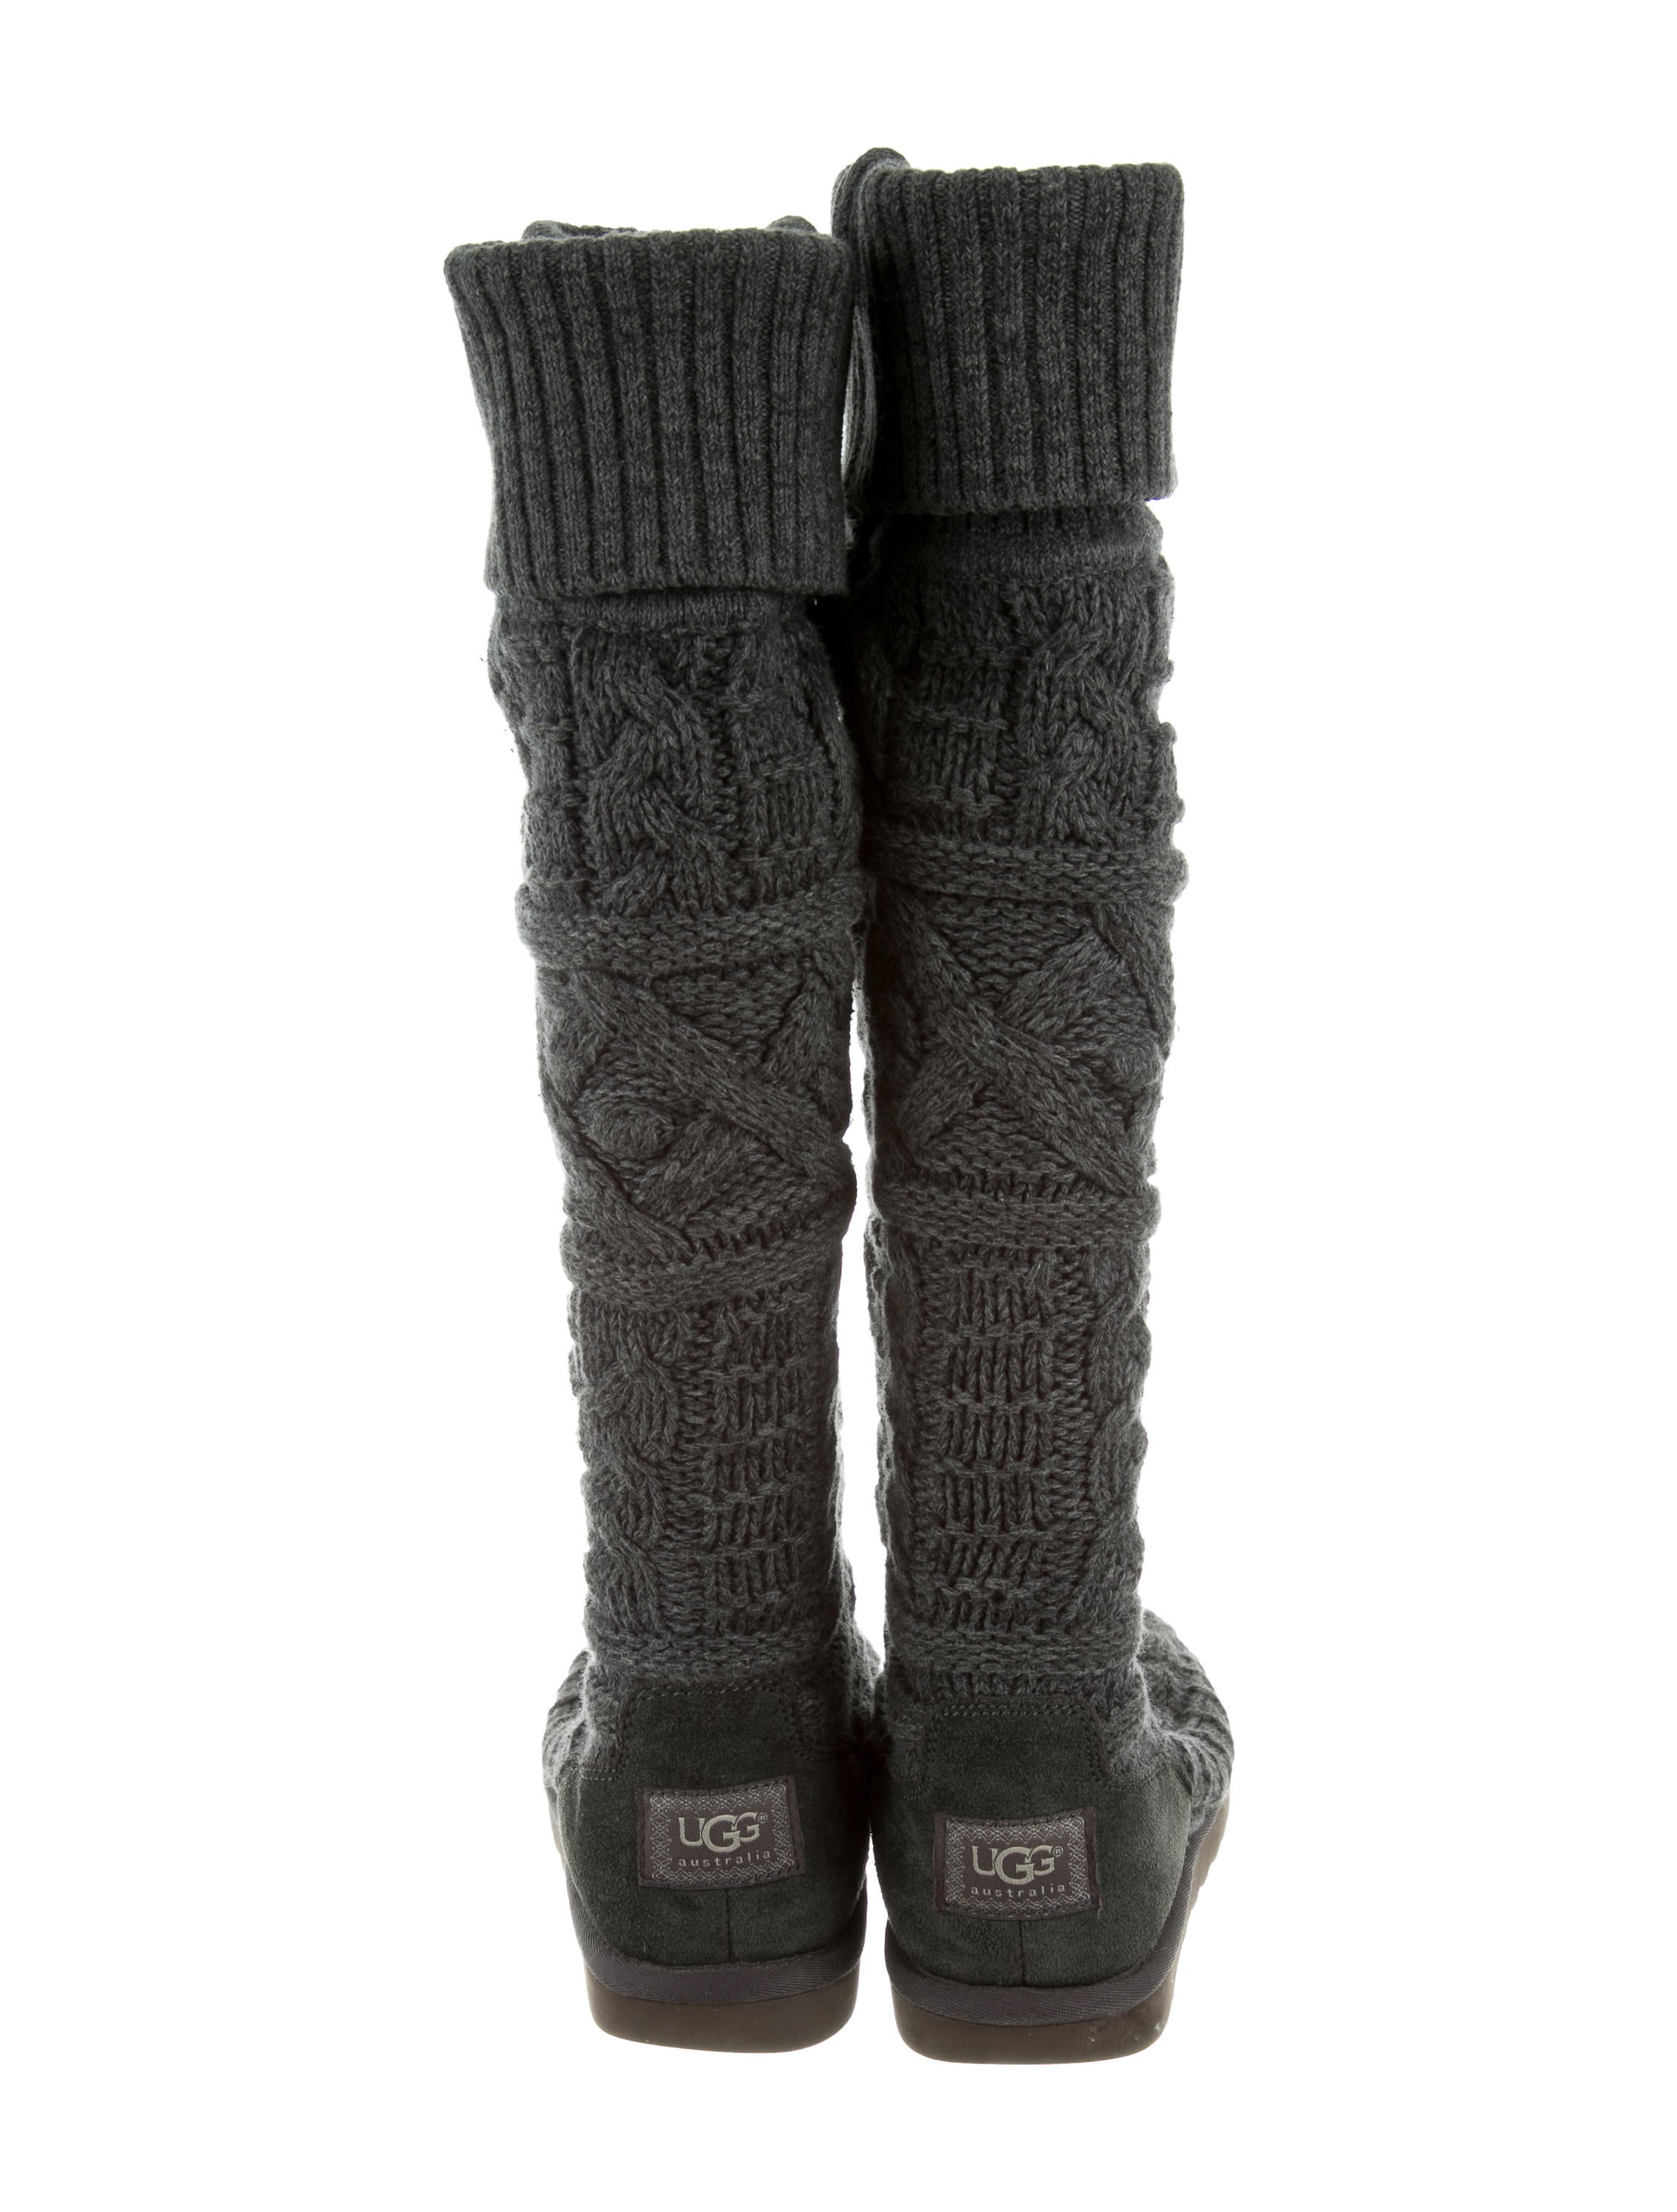 ugg australia knee high cable knit boots shoes